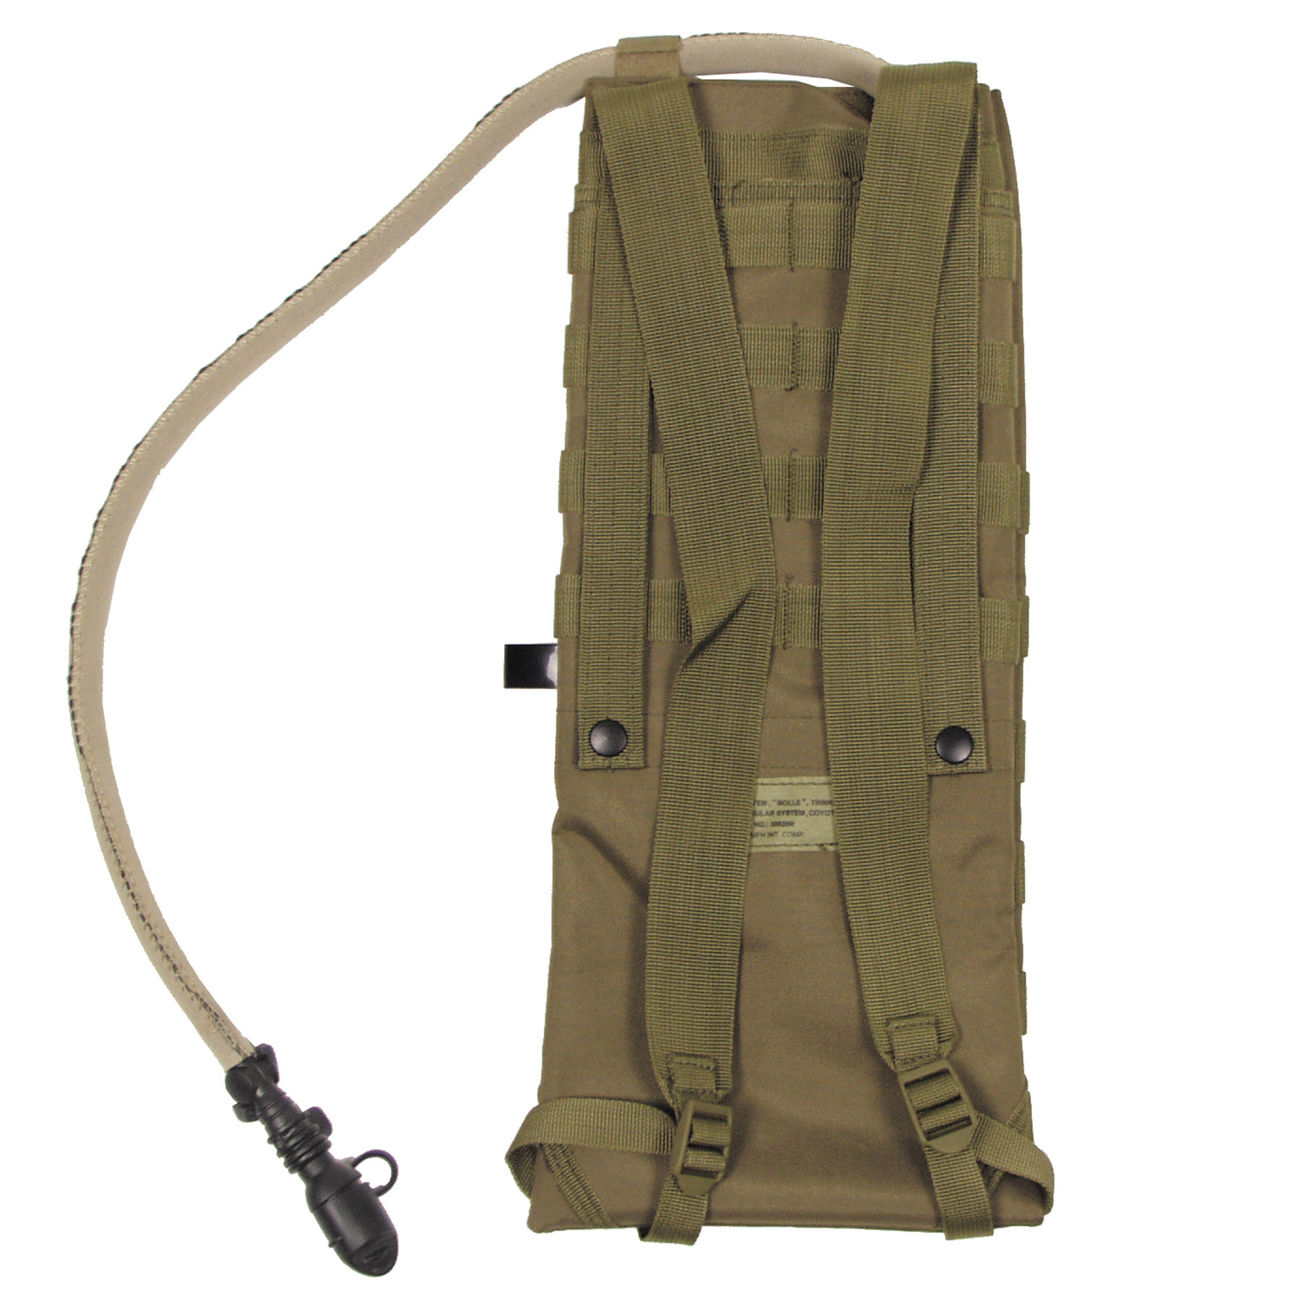 MFH Trinksystem MOLLE 2,5 Liter, coyote 4